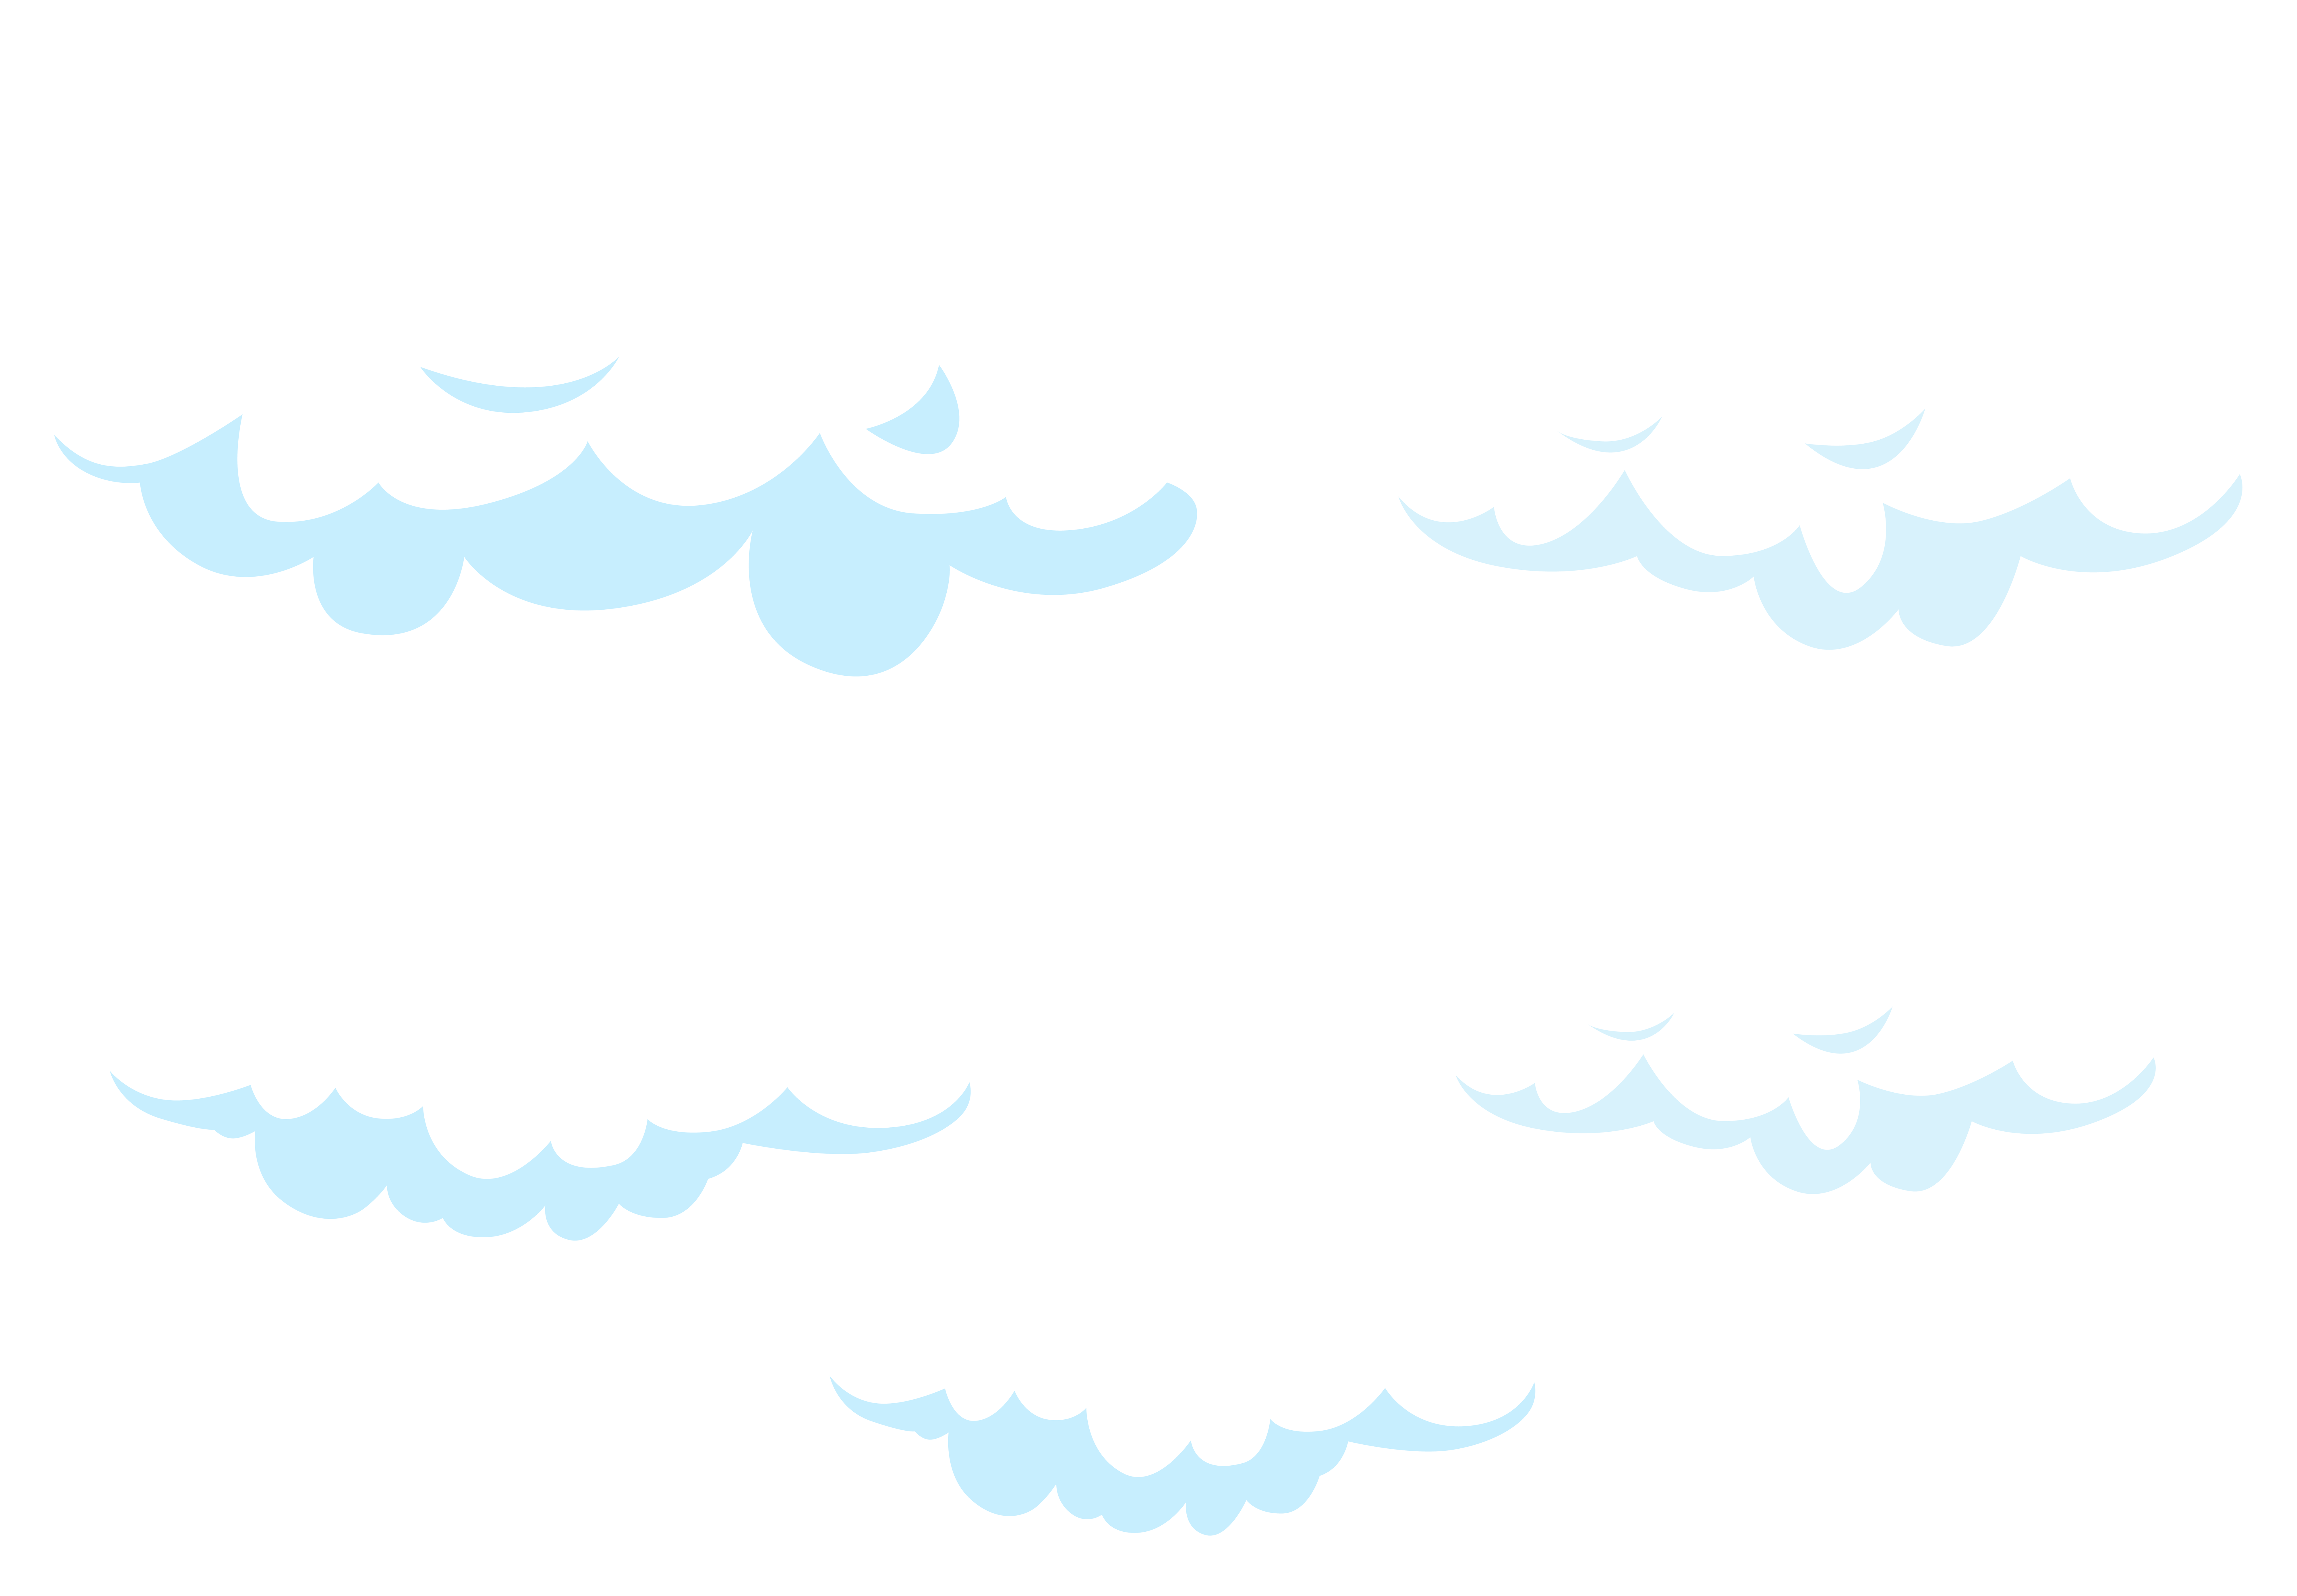 Clouds clip art png. Cartoon set transparent image